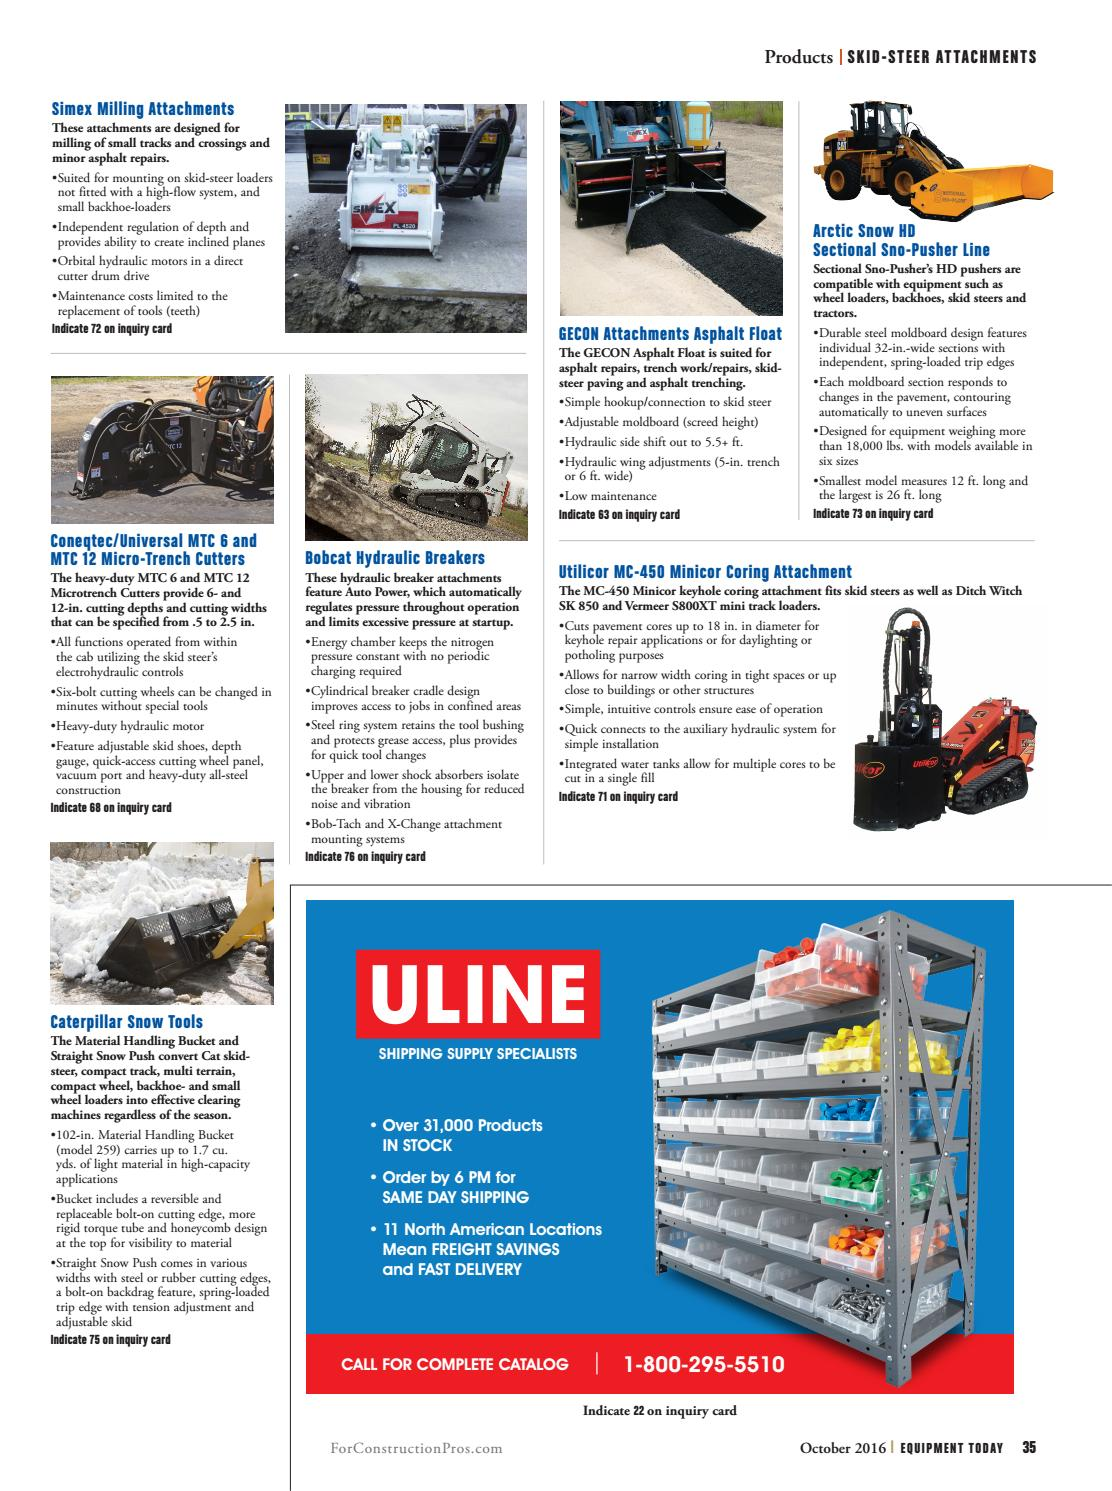 Equipment Today October 2016 by ForConstructionPros com - issuu